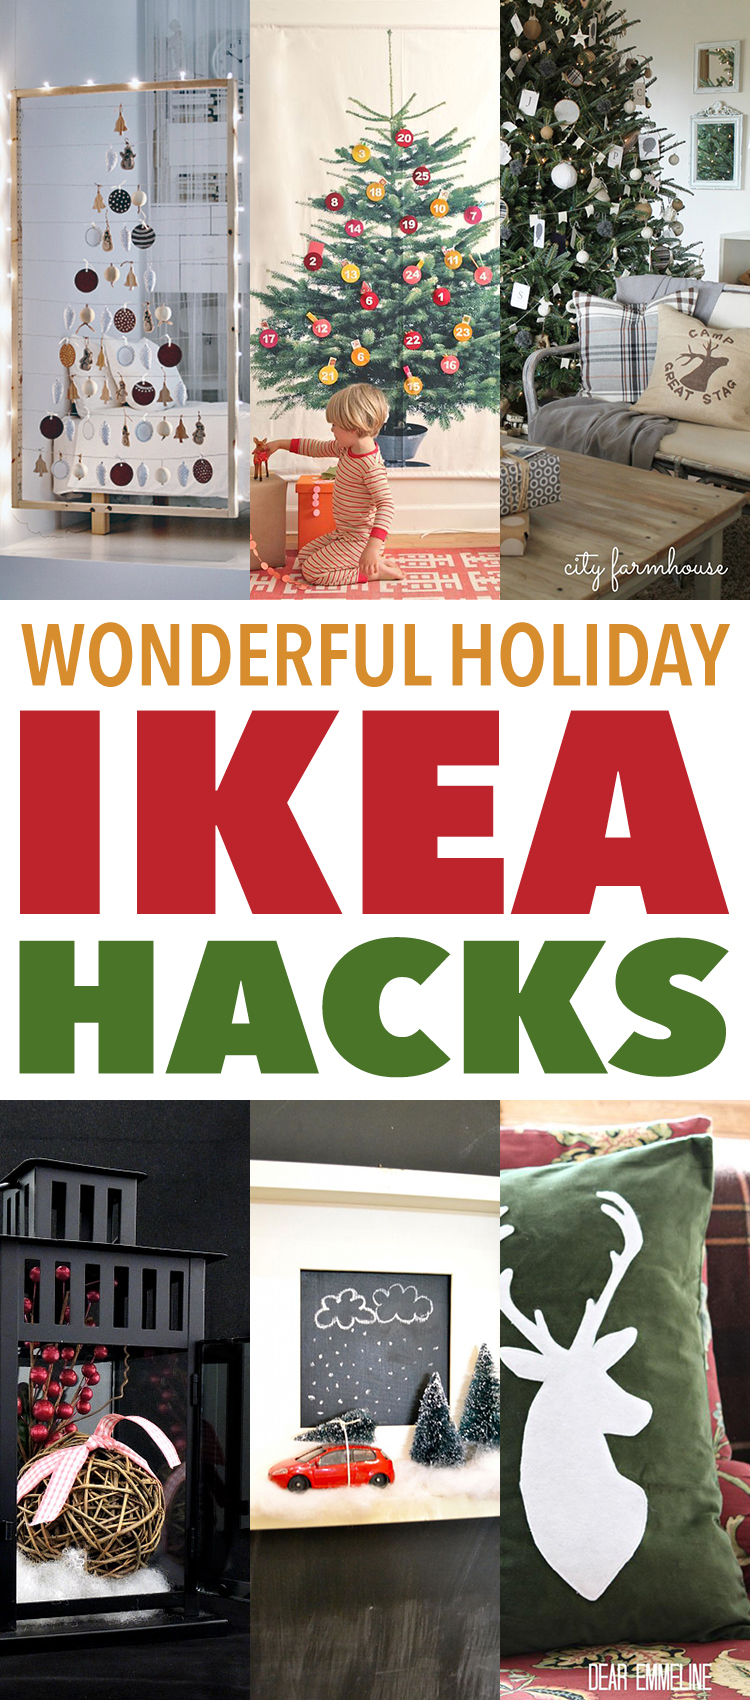 http://thecottagemarket.com/wp-content/uploads/2016/11/HolidayIKEAHacks-TOWER-001.jpg